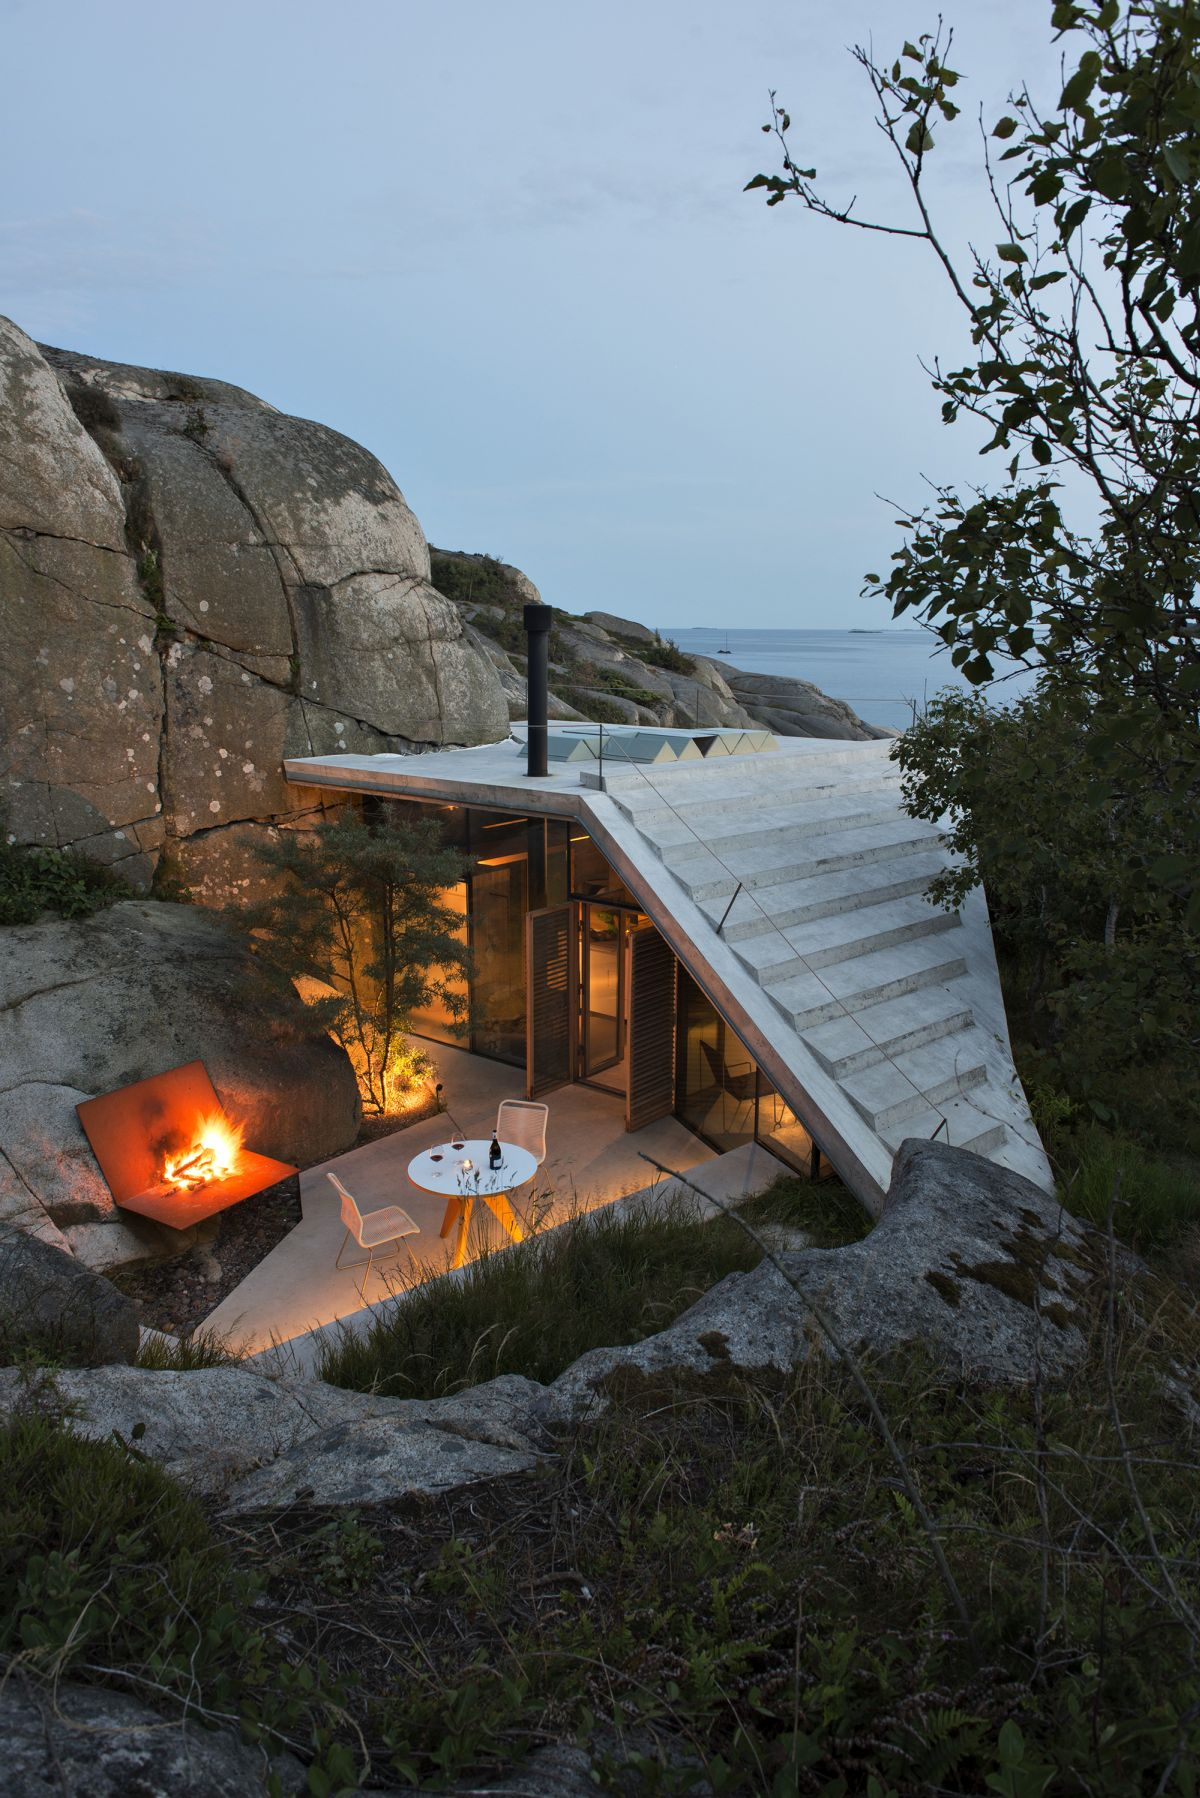 Knapphullet summer cabin roof platform connected to cliff